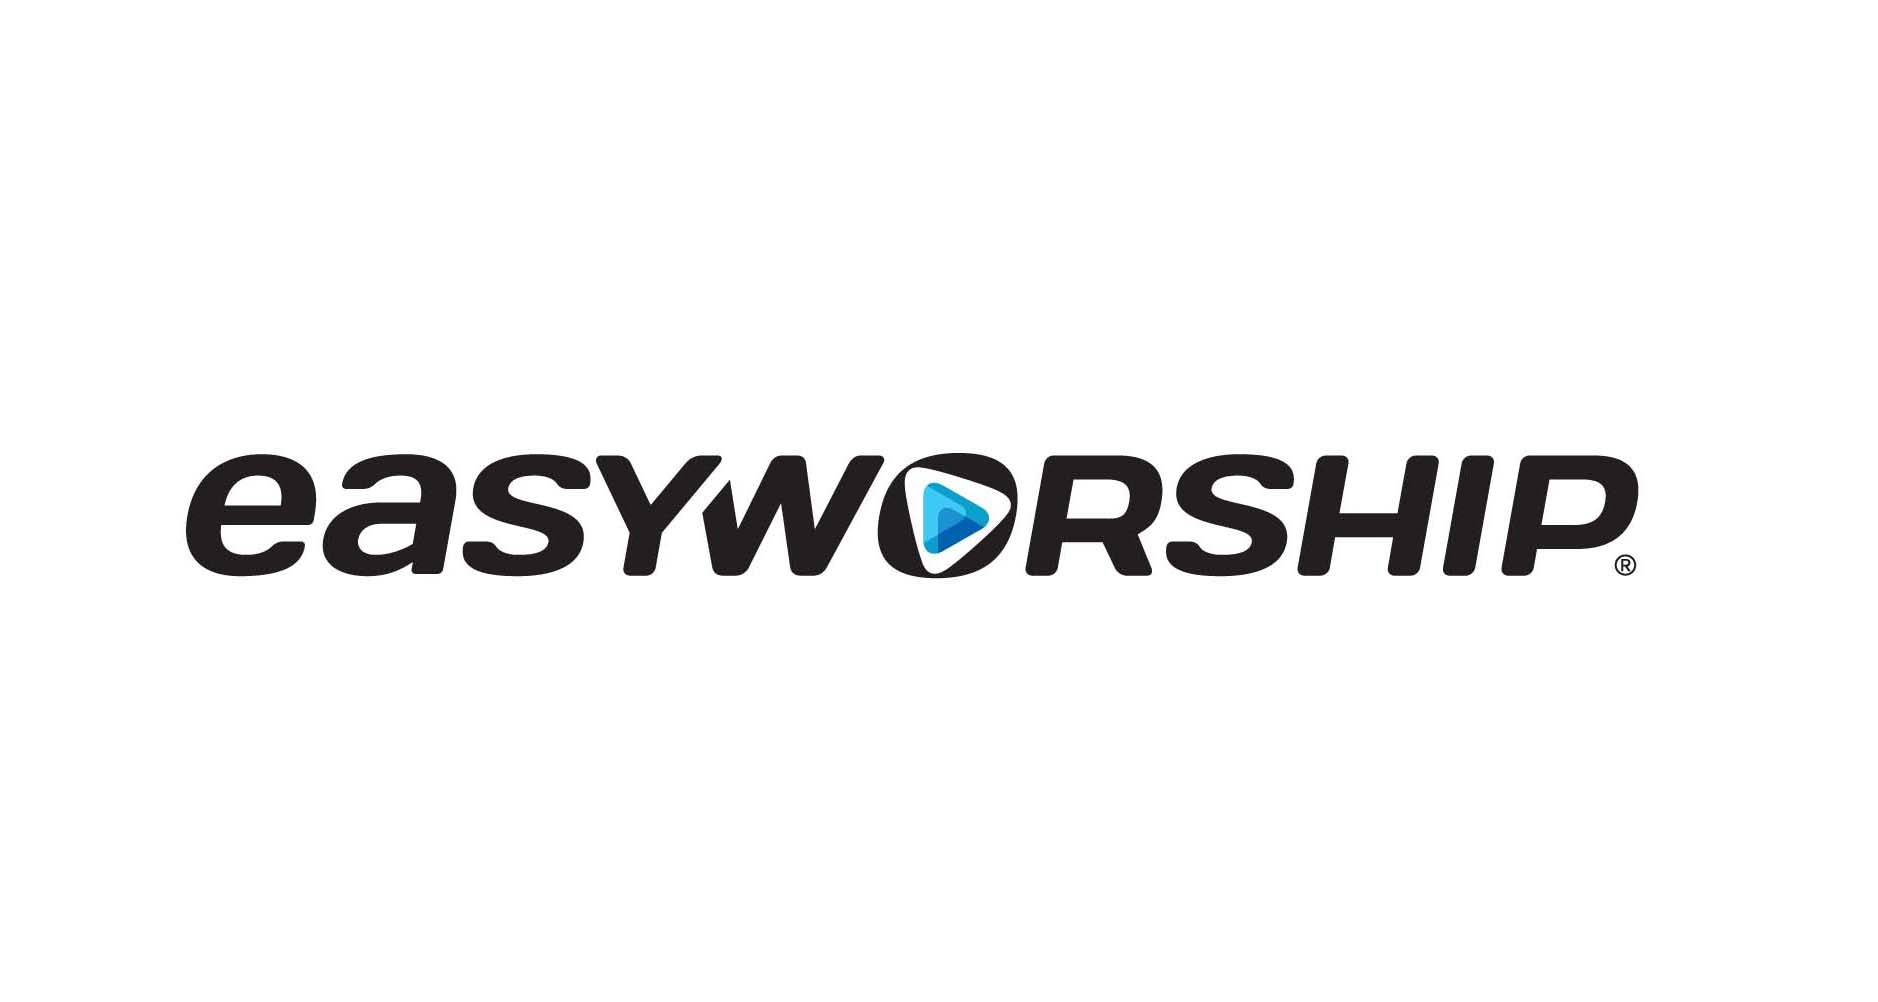 easy worship download with crack